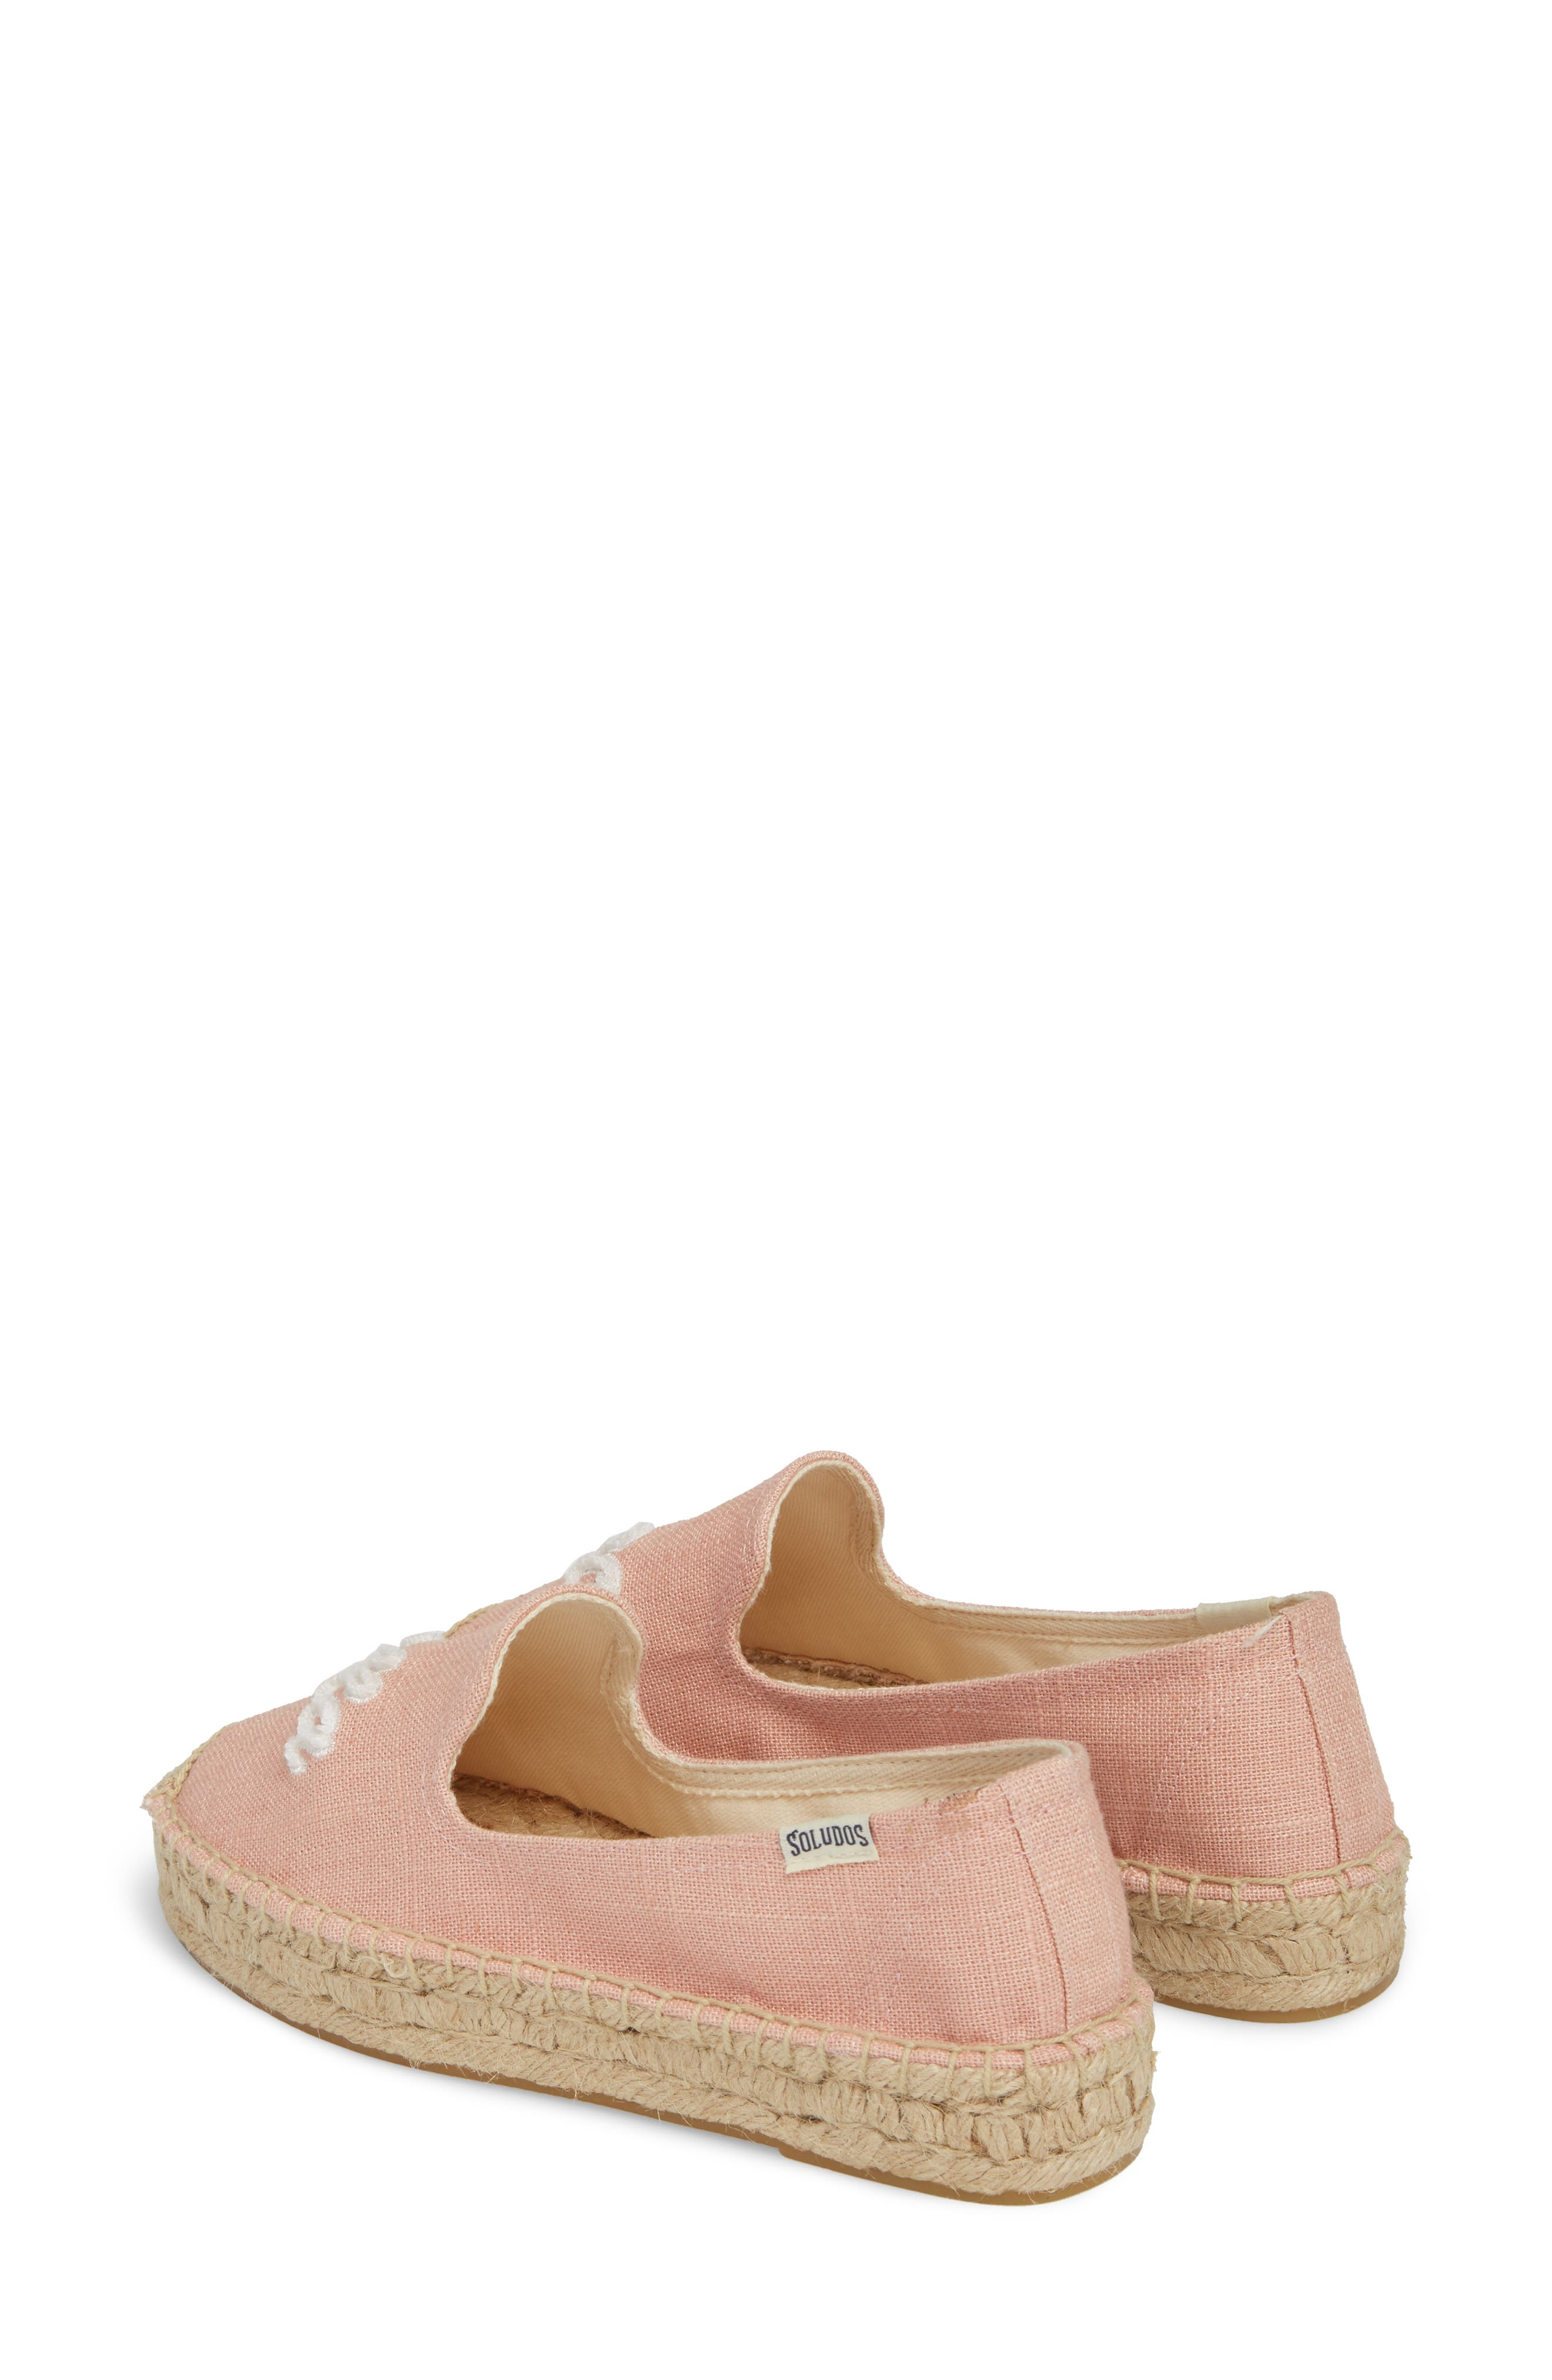 Ciao Bella Espadrille Flat,                             Alternate thumbnail 2, color,                             Dusty Rose Fabric